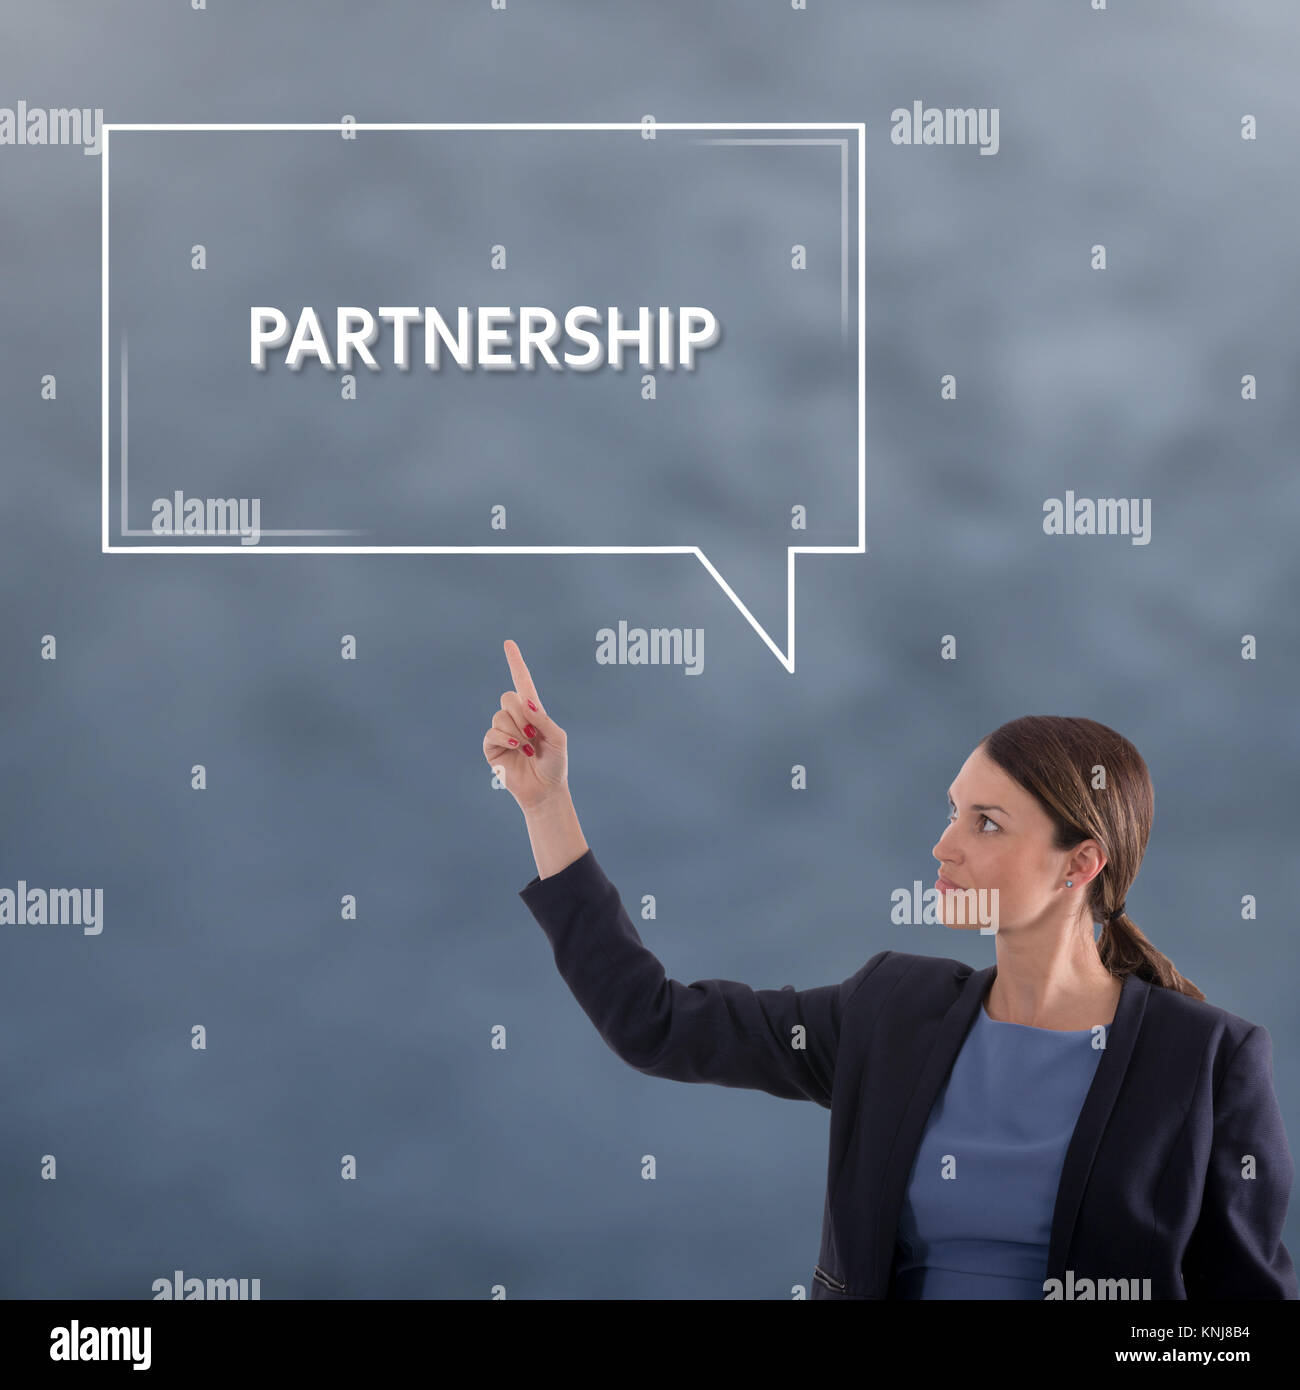 PARTNERSHIP Business Concept. Business Woman Graphic Concept - Stock Image